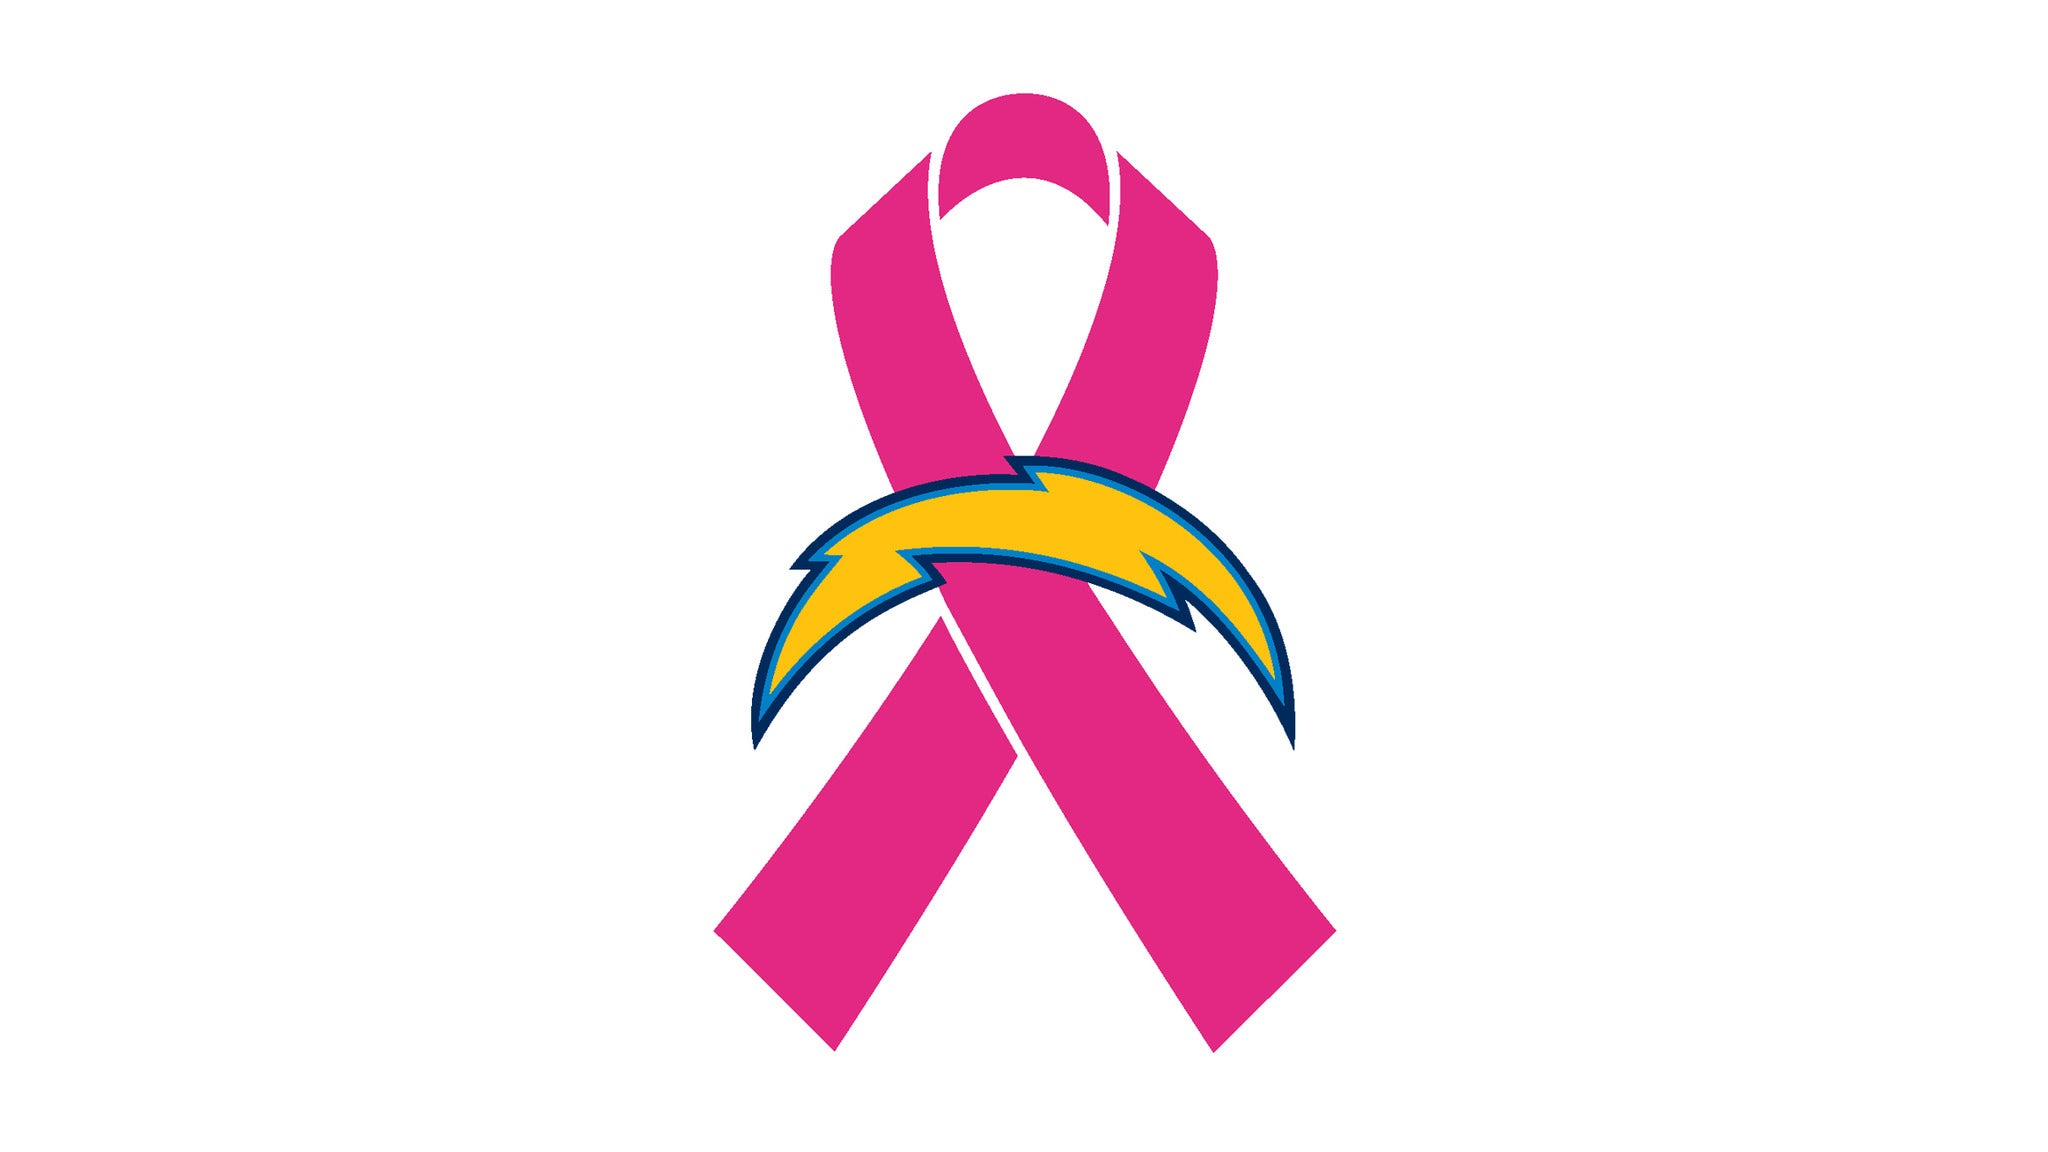 San Diego Chargers vs. Tennessee Titans - San Diego, CA 92160